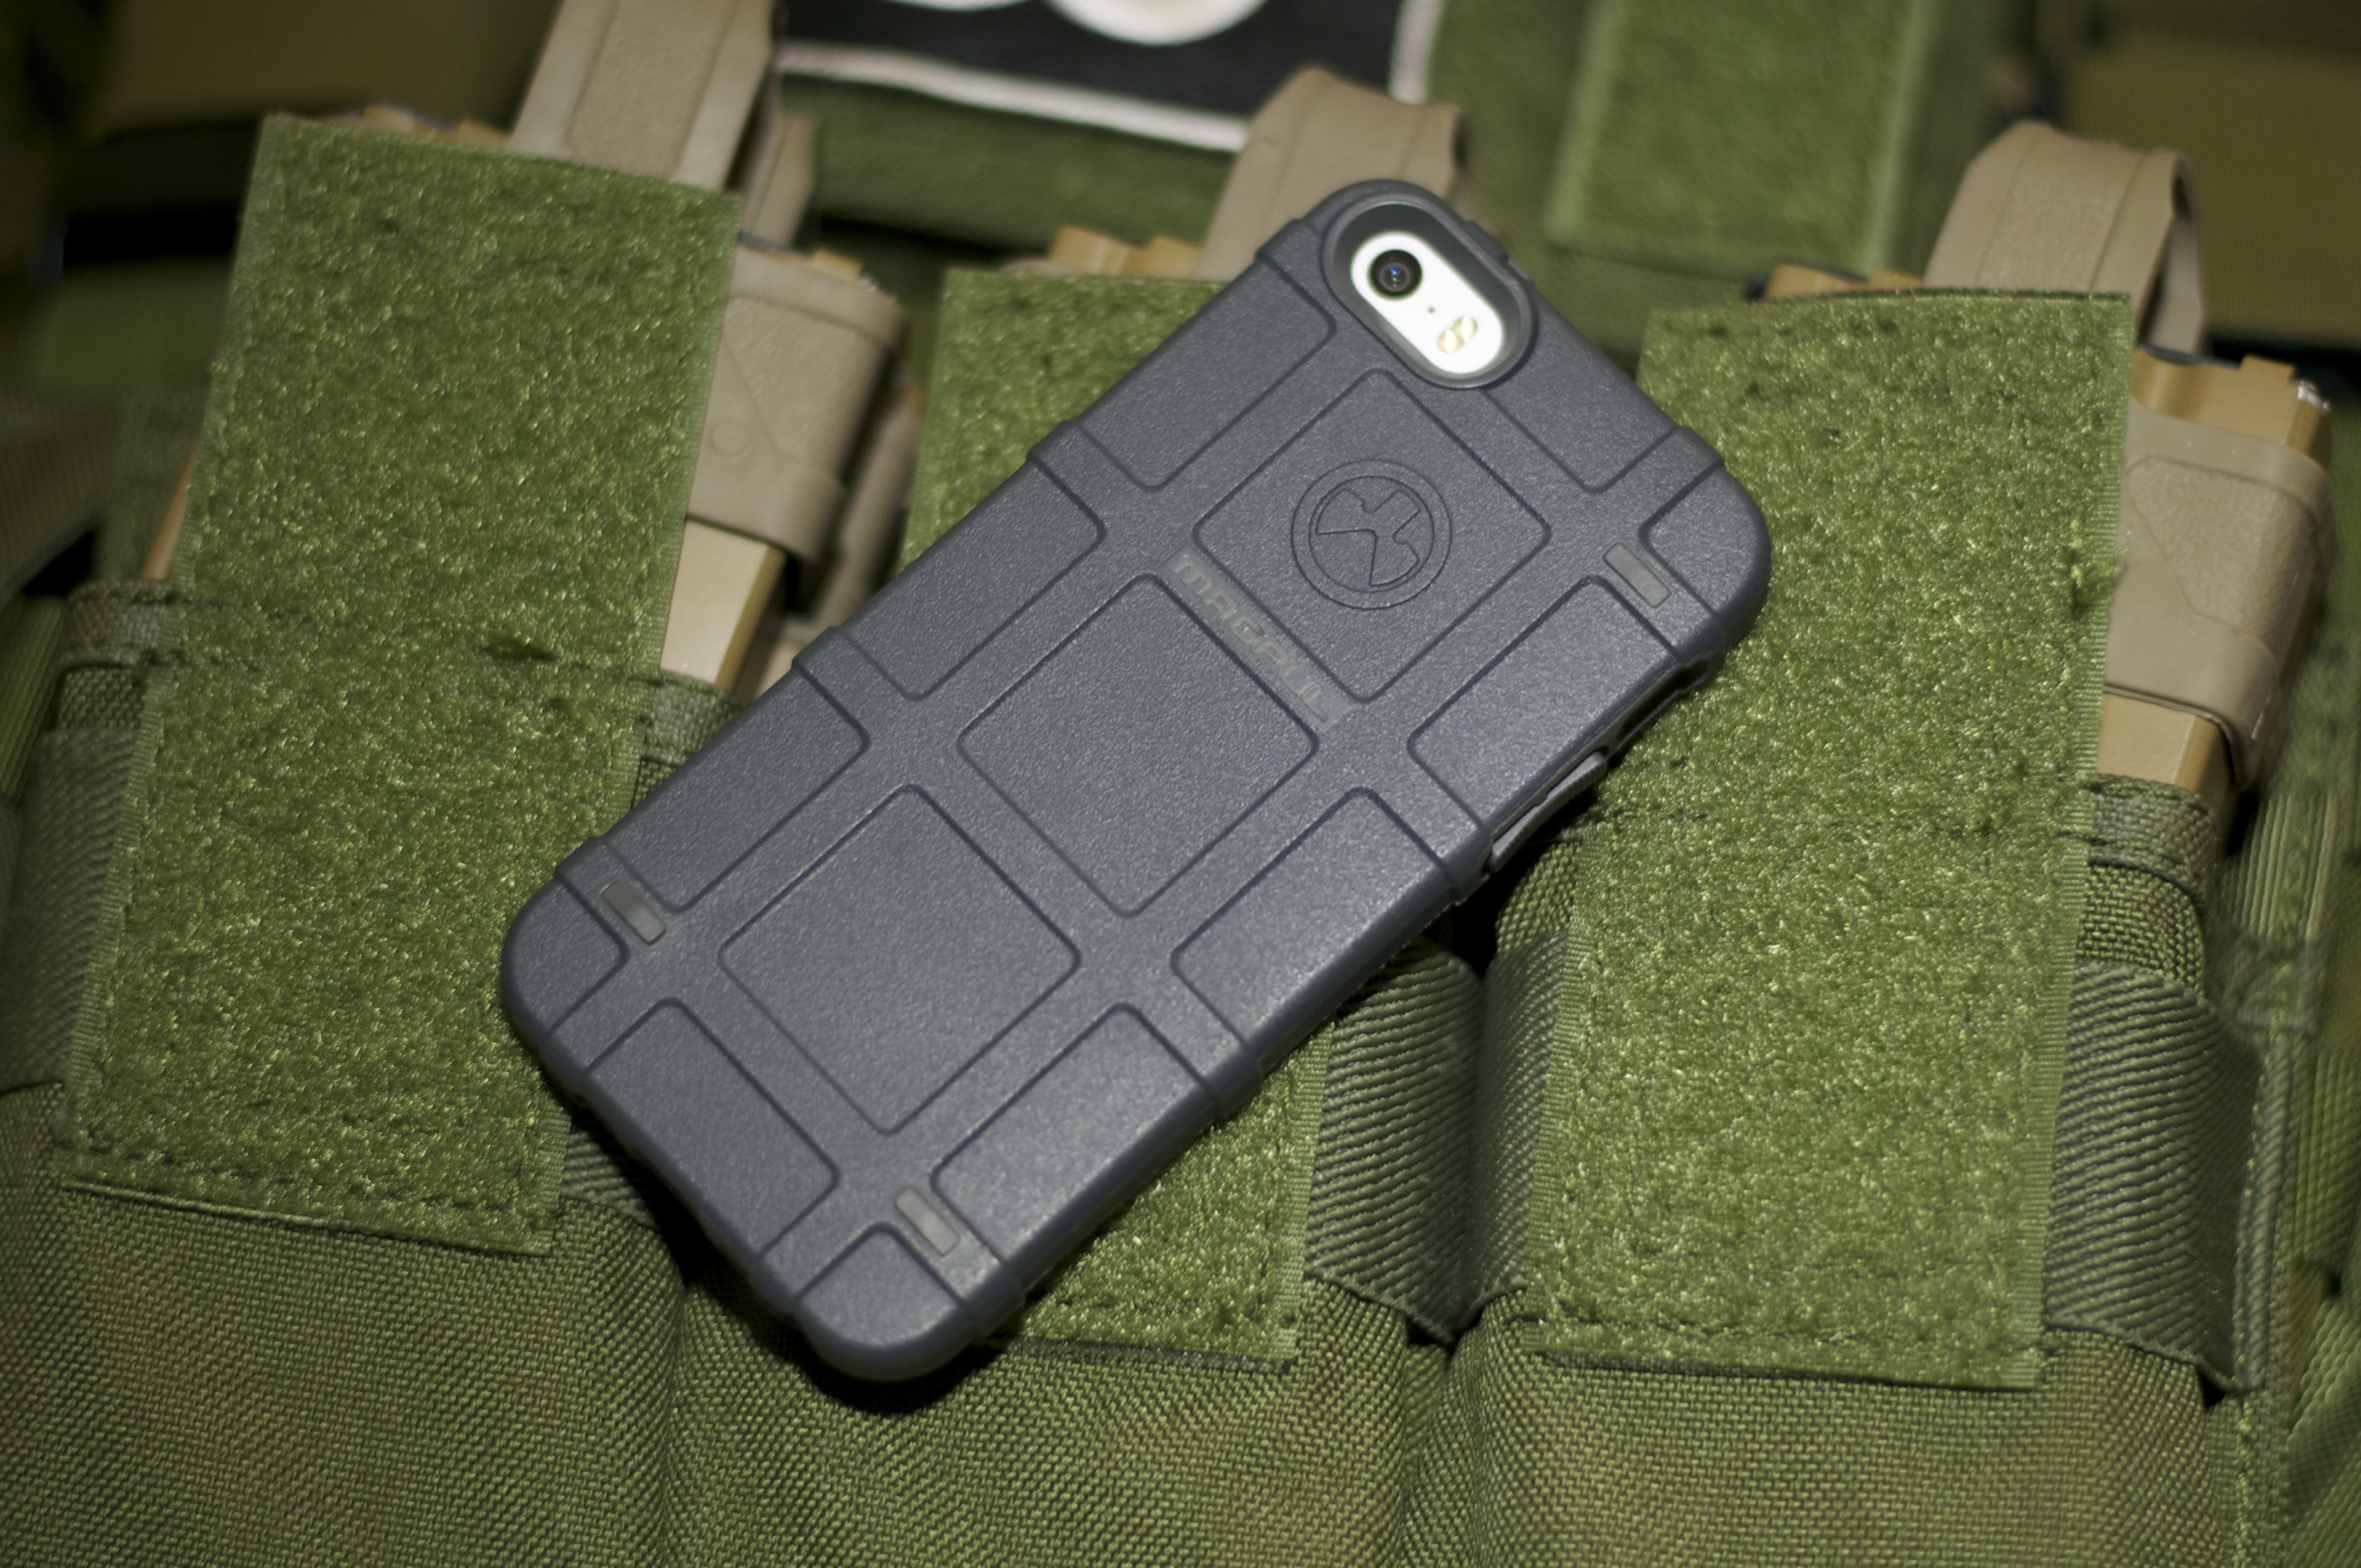 Magpul Bump Case for the new iPhone 5/5s back